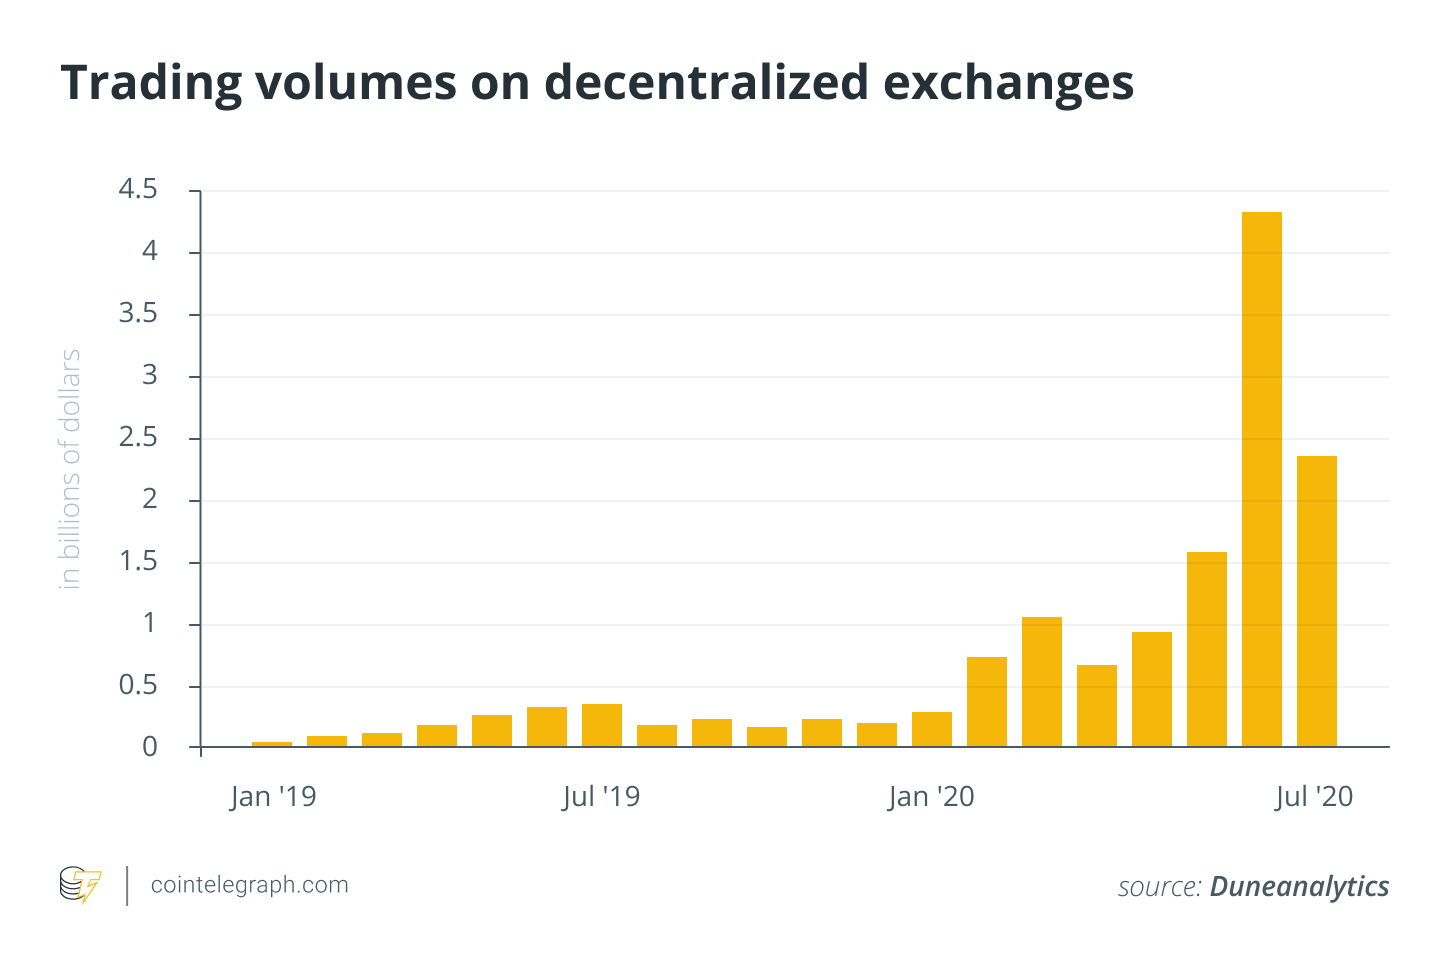 Trading volume on decentralized exchanges